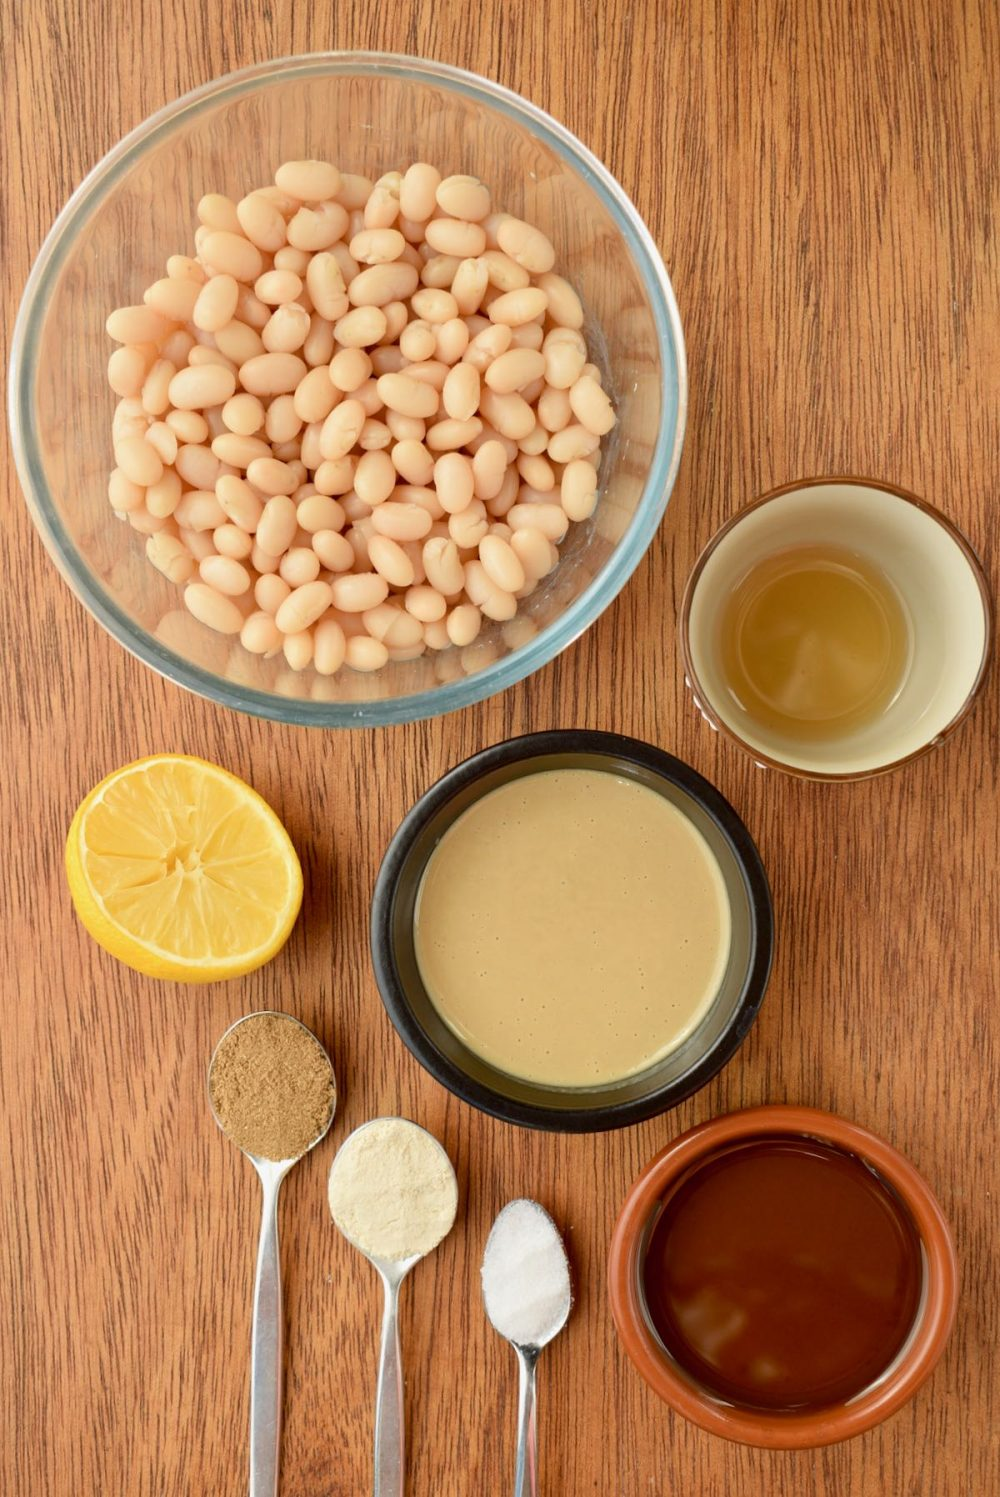 Ingredients laid out on a wooden board - a bowl of beans, half a lemon, tahini, vinegar, olive oil and spoonfuls of coriander, garlic powder and salt.